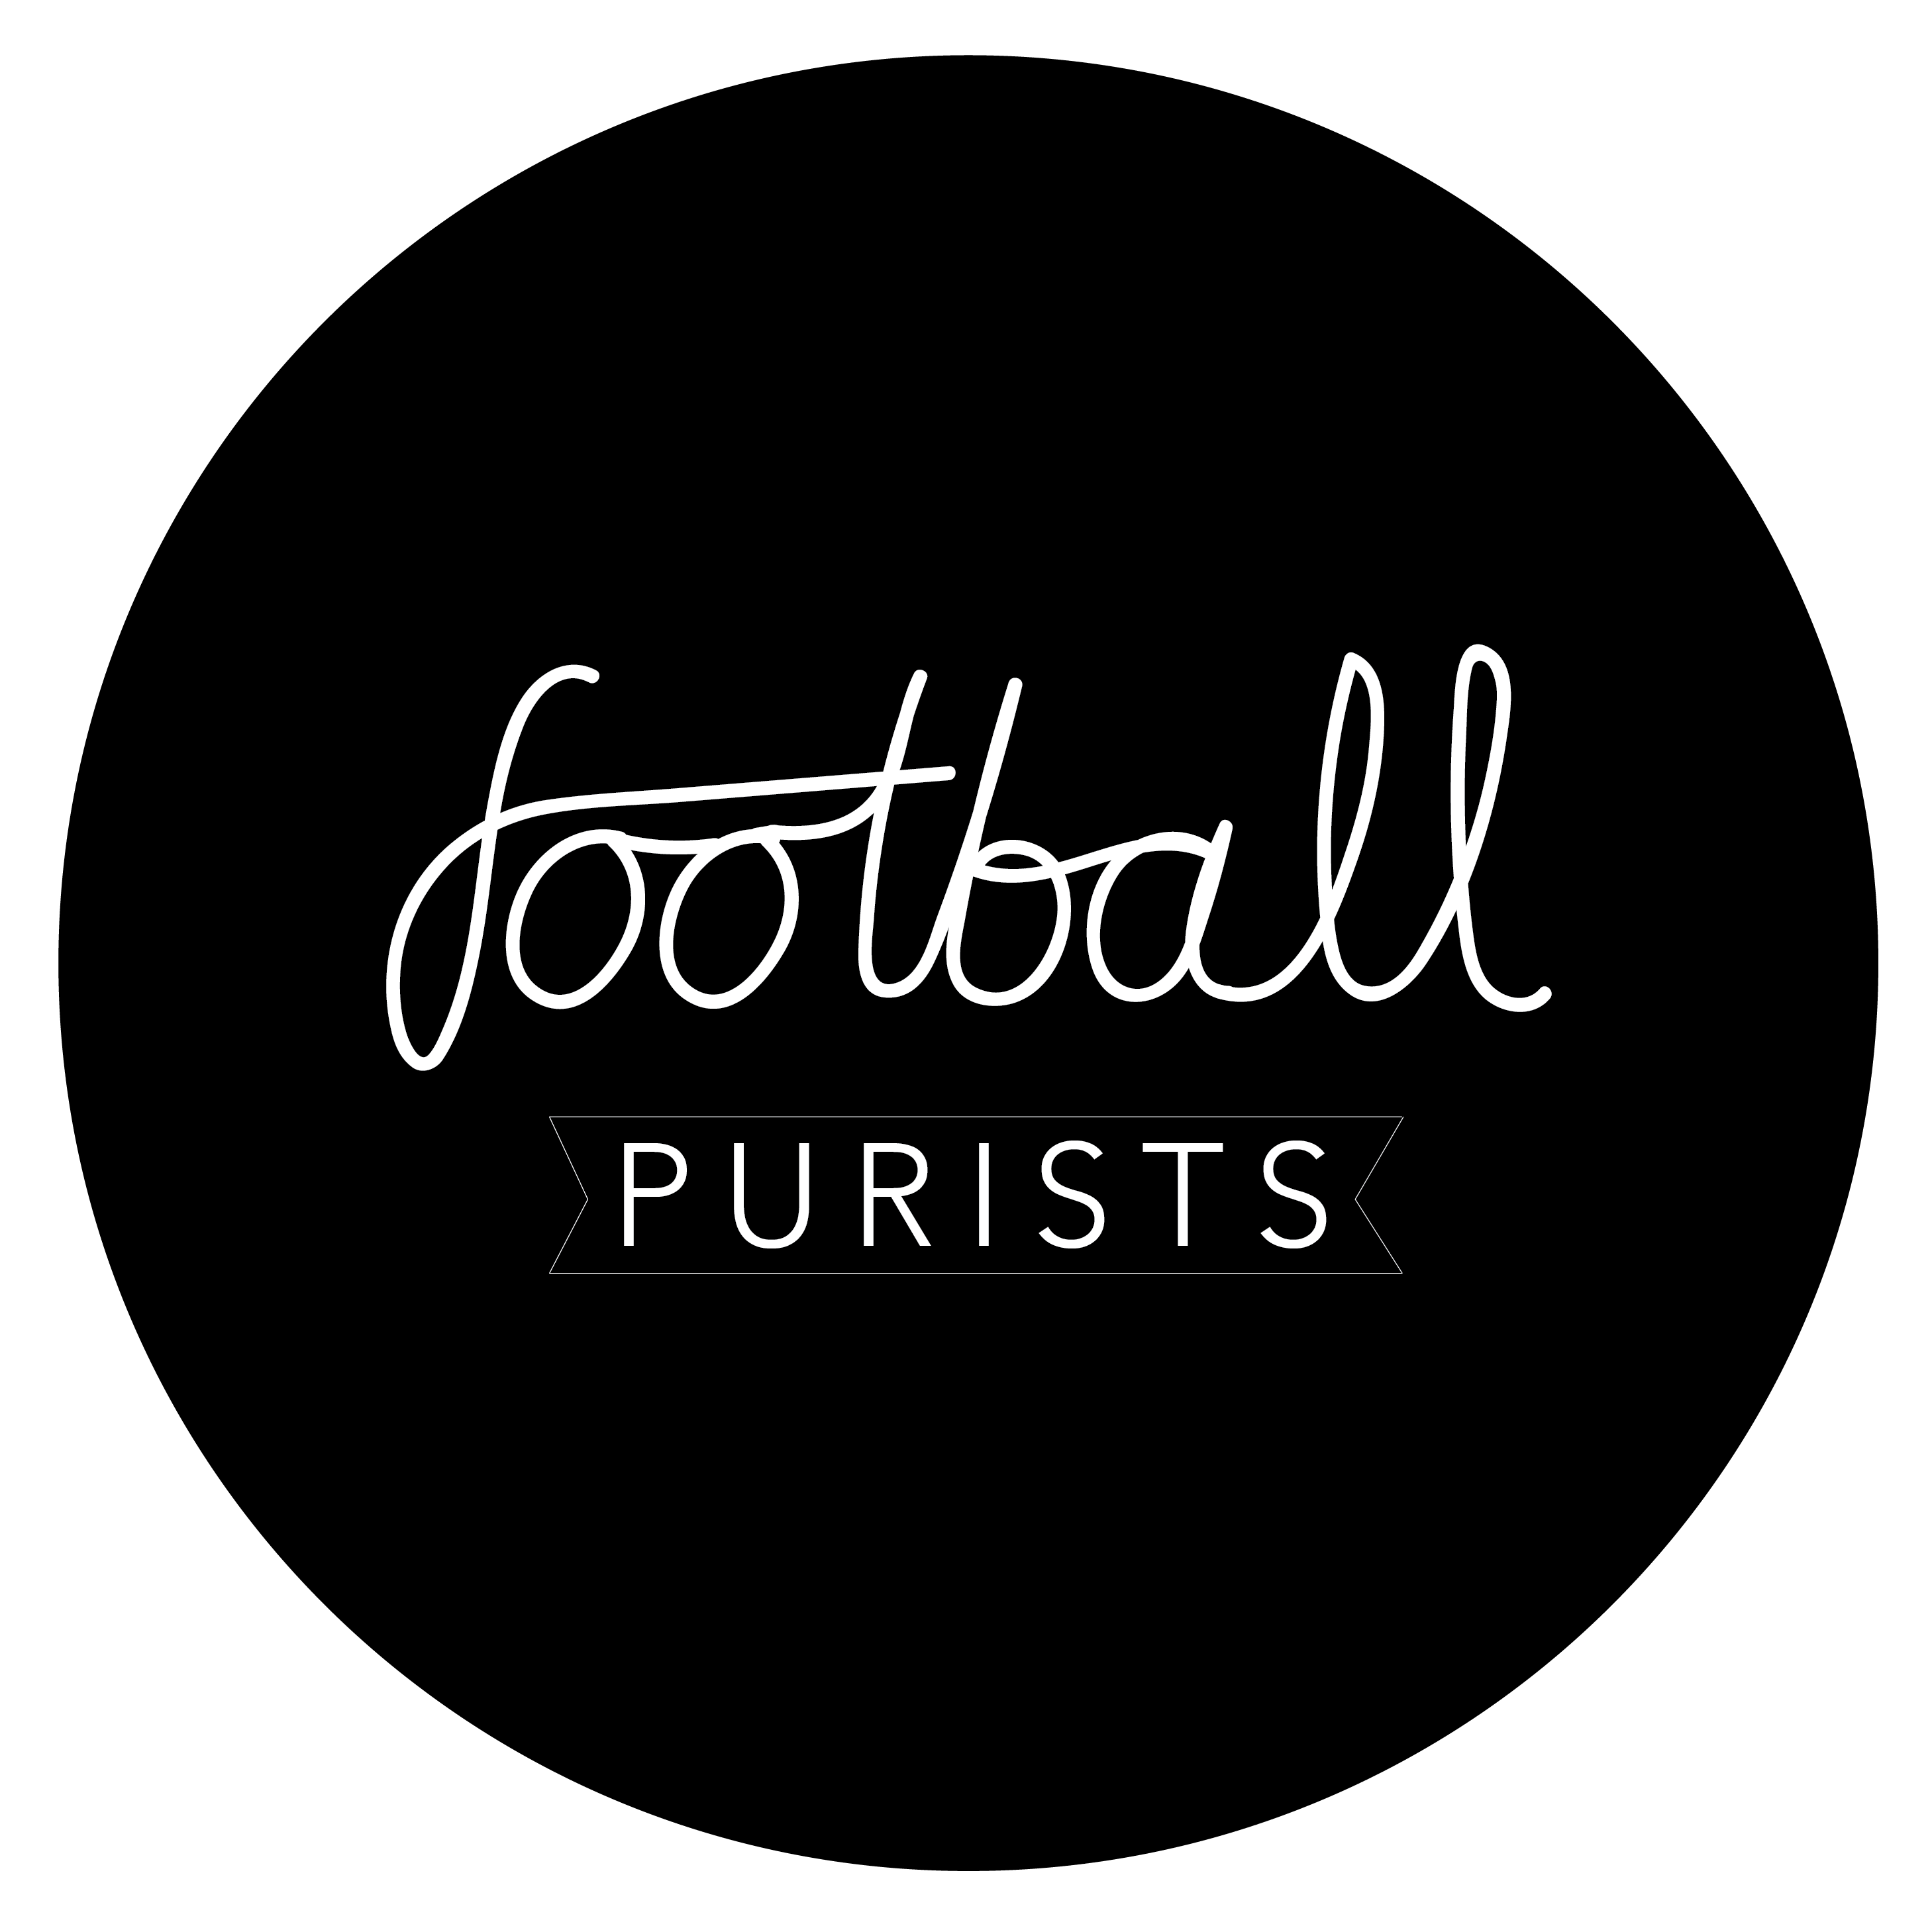 Episode 1: Football Purists Podcast, Derby Day, EPL, English Premier League